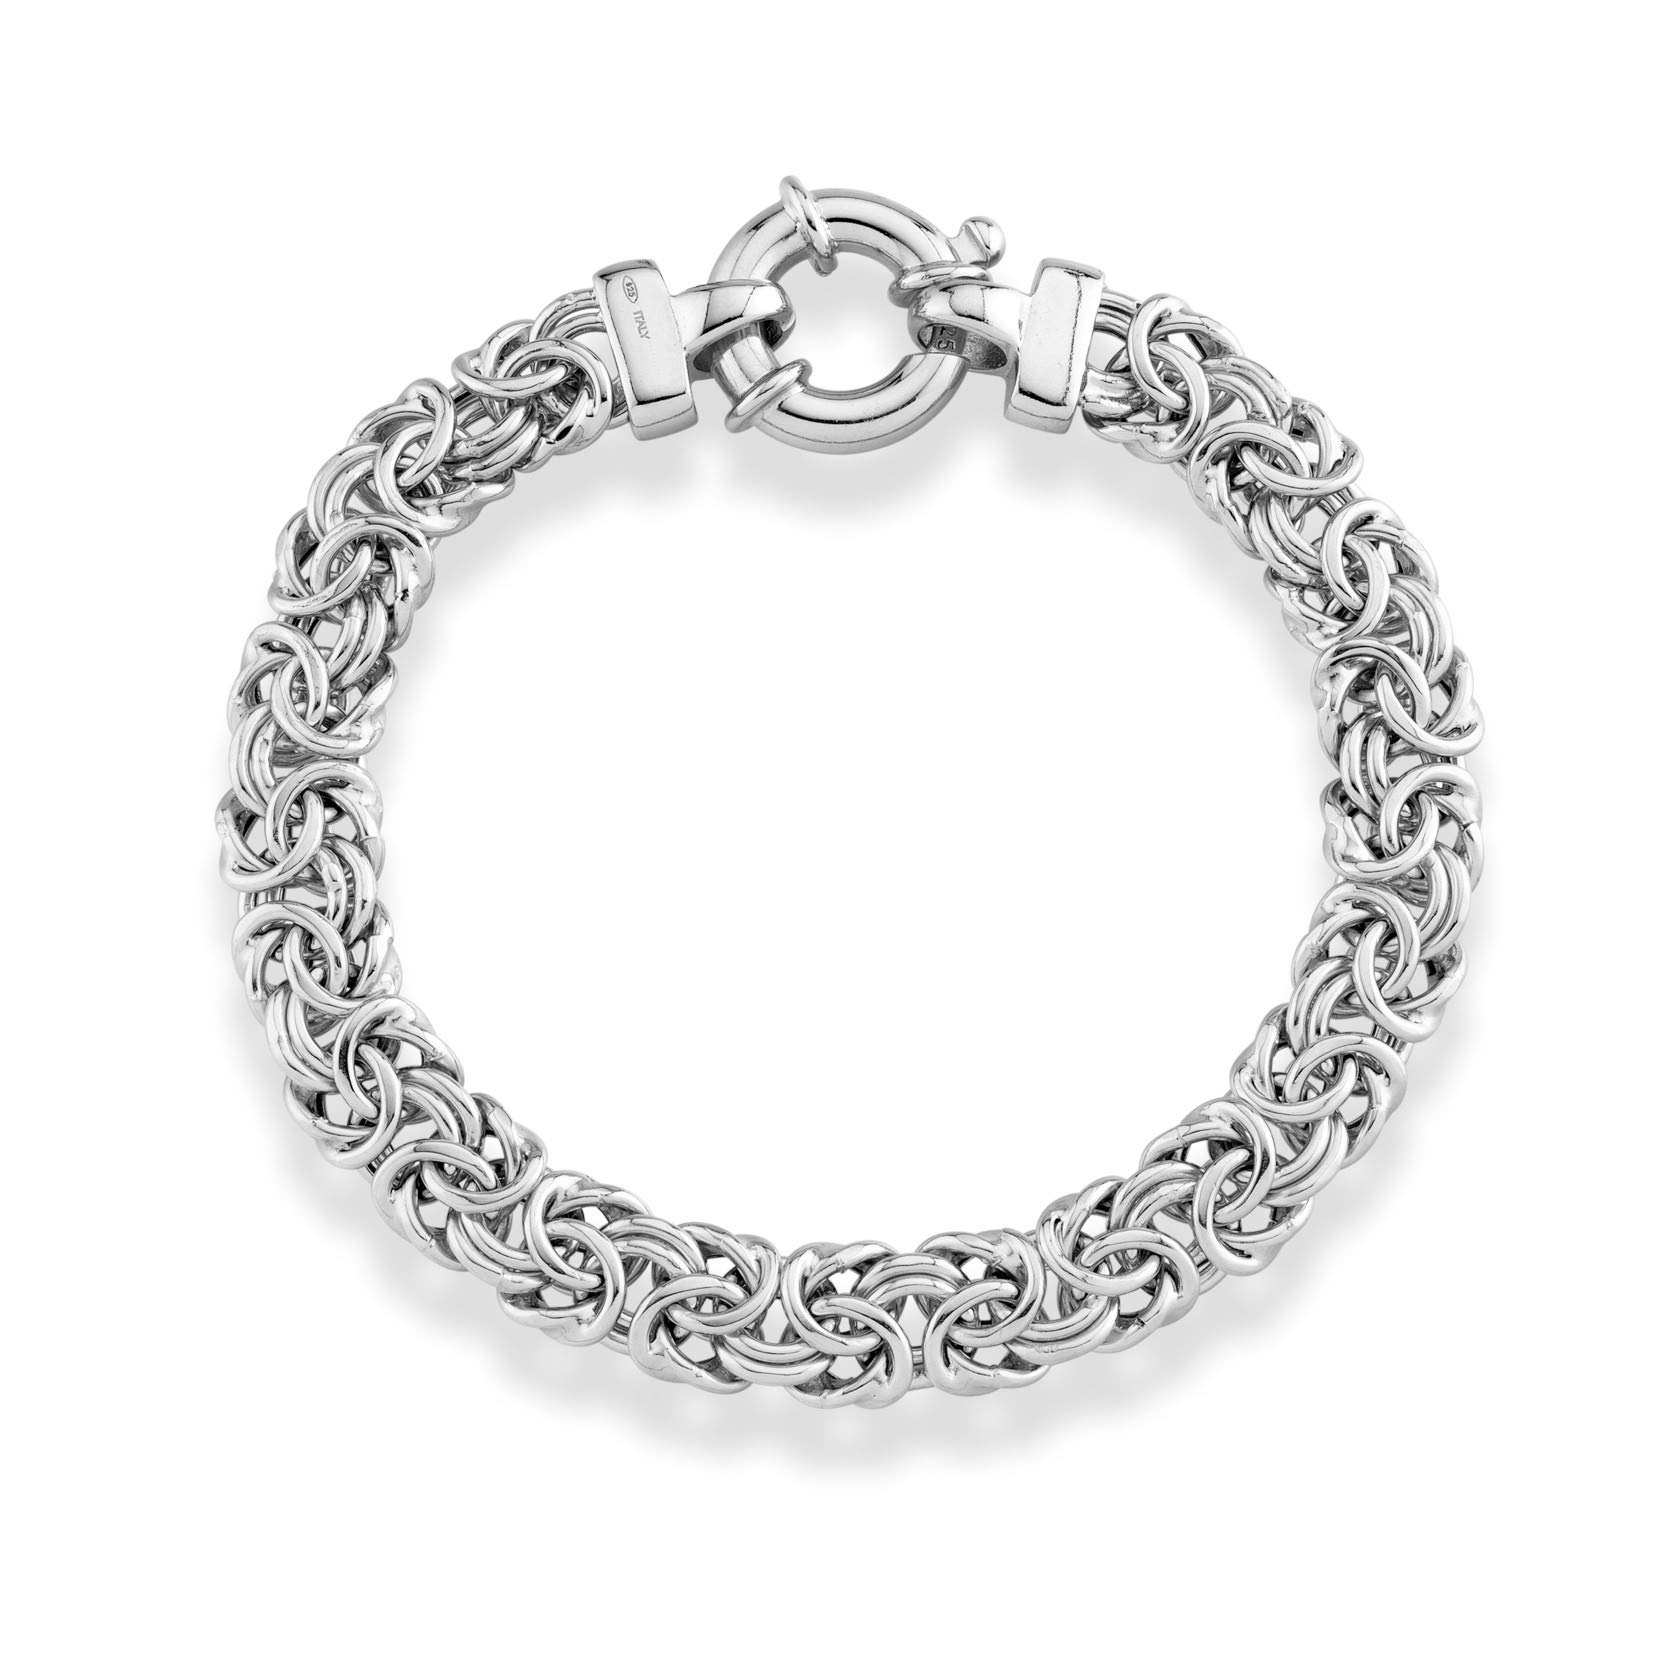 MiaBella 925 Sterling Silver Italian 9mm Byzantine Link Chain Bracelet for Women, 7.25''-8'' (7.25)